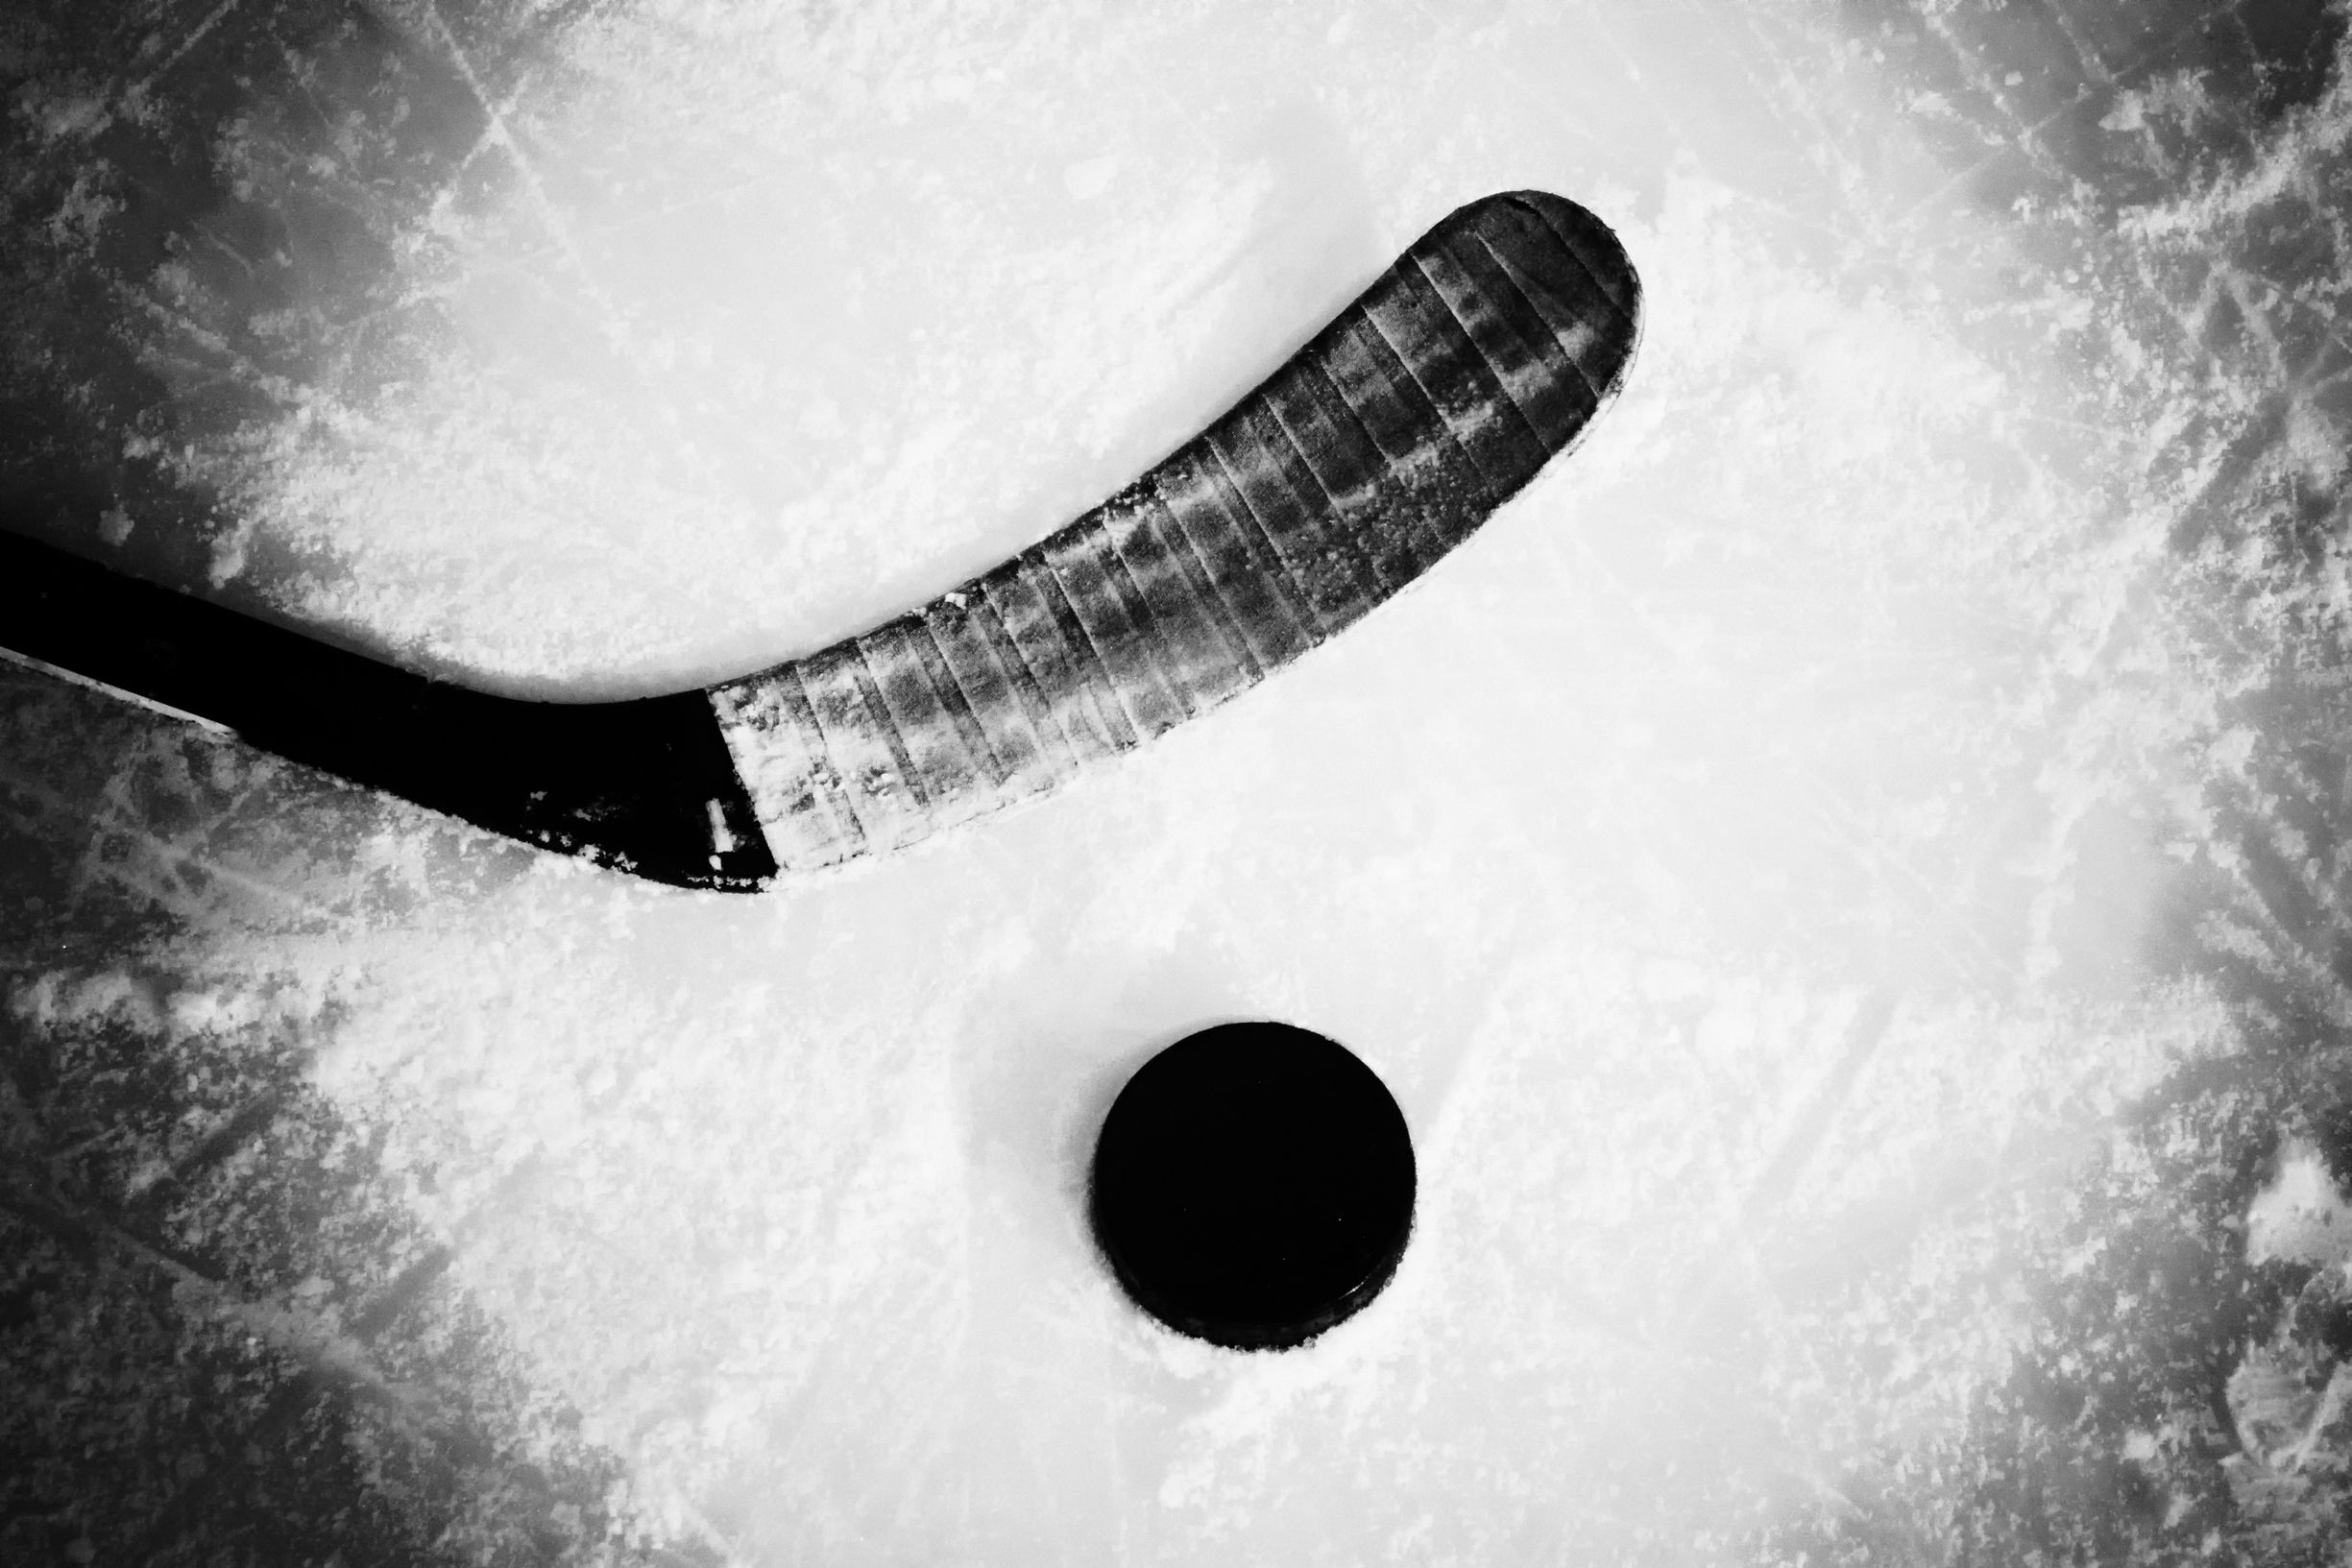 Ice Hockey Wallpapers HD Backgrounds Images Pics Photos 2449x1633